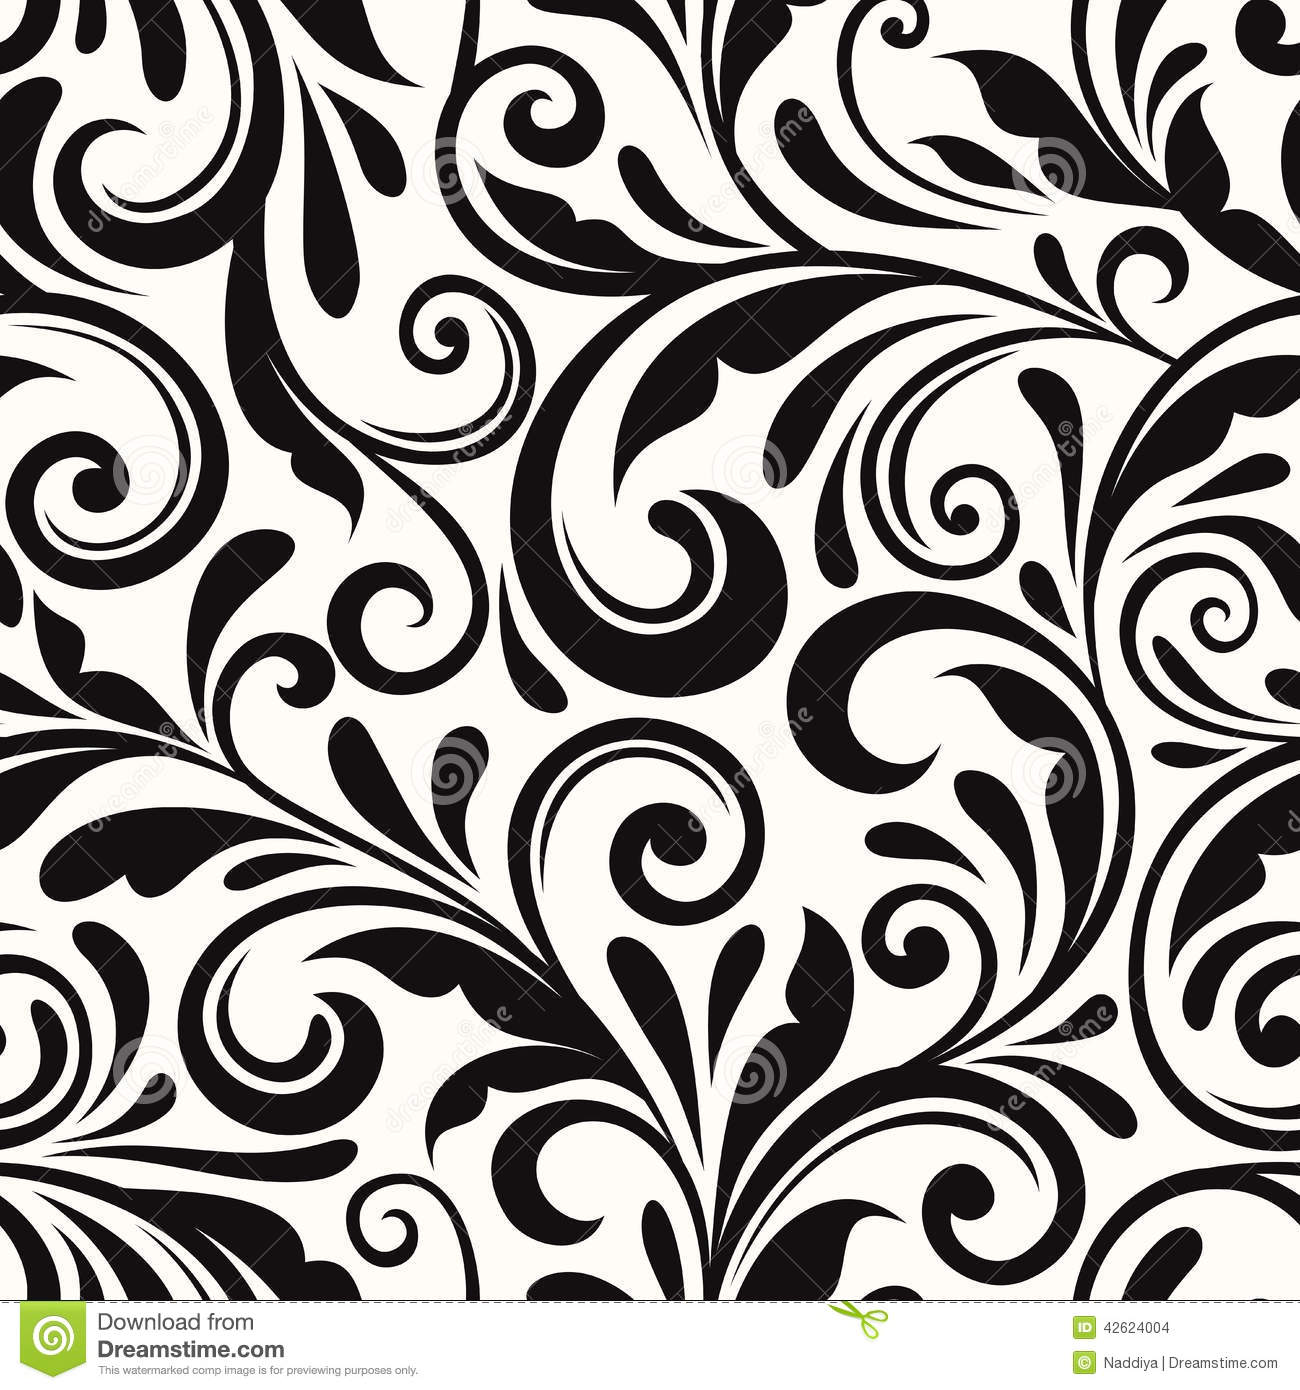 Vintage seamless floral pattern. Vector illustration.